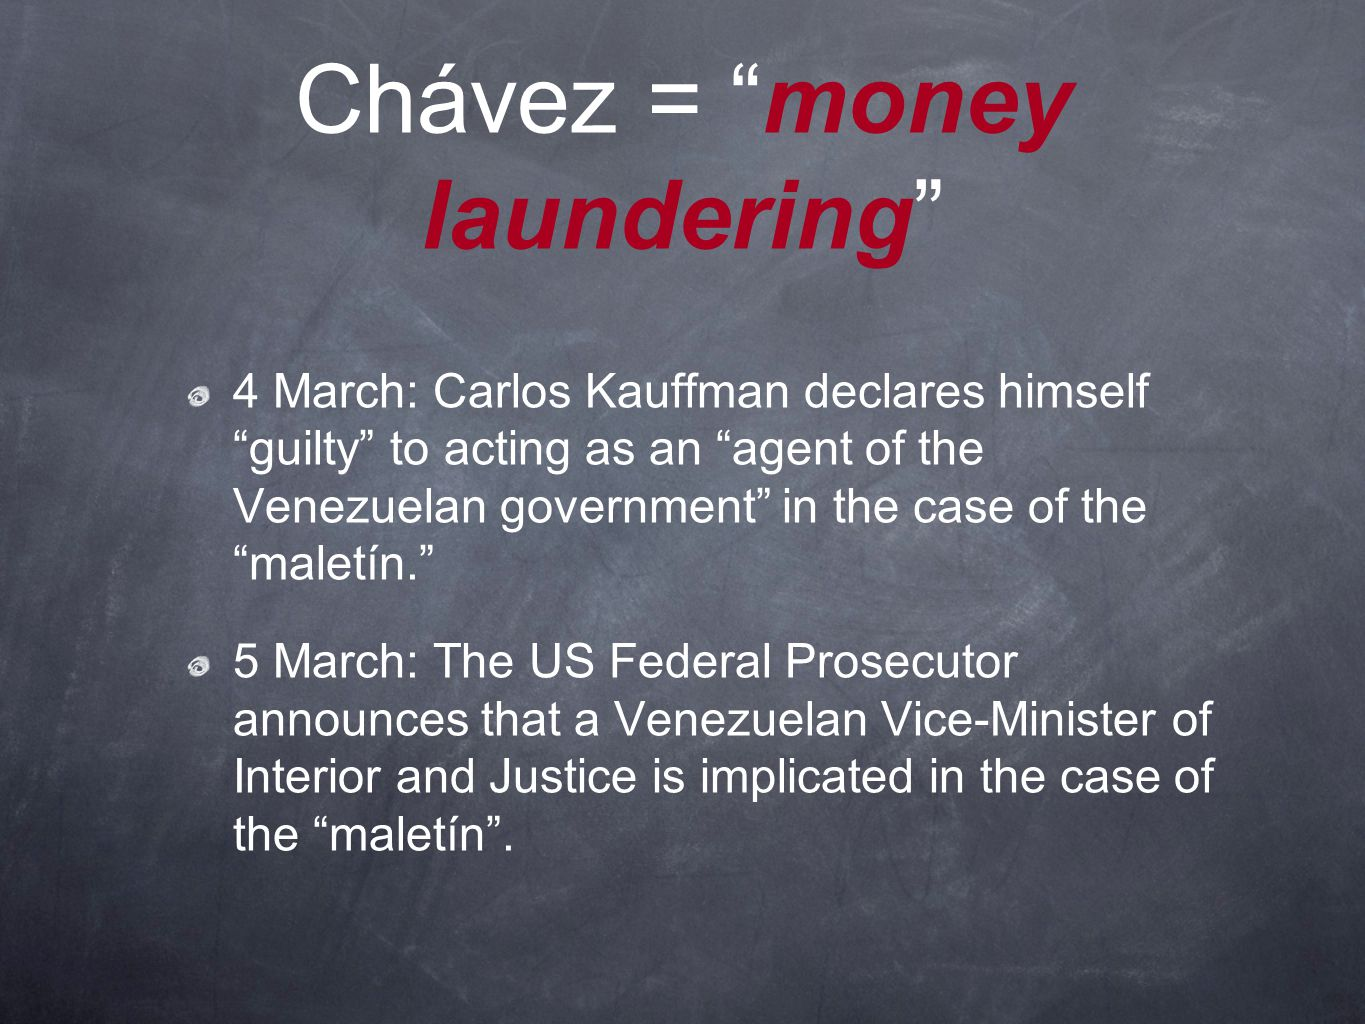 Chávez = money laundering 4 March: Carlos Kauffman declares himself guilty to acting as an agent of the Venezuelan government in the case of the maletín. 5 March: The US Federal Prosecutor announces that a Venezuelan Vice-Minister of Interior and Justice is implicated in the case of the maletín .